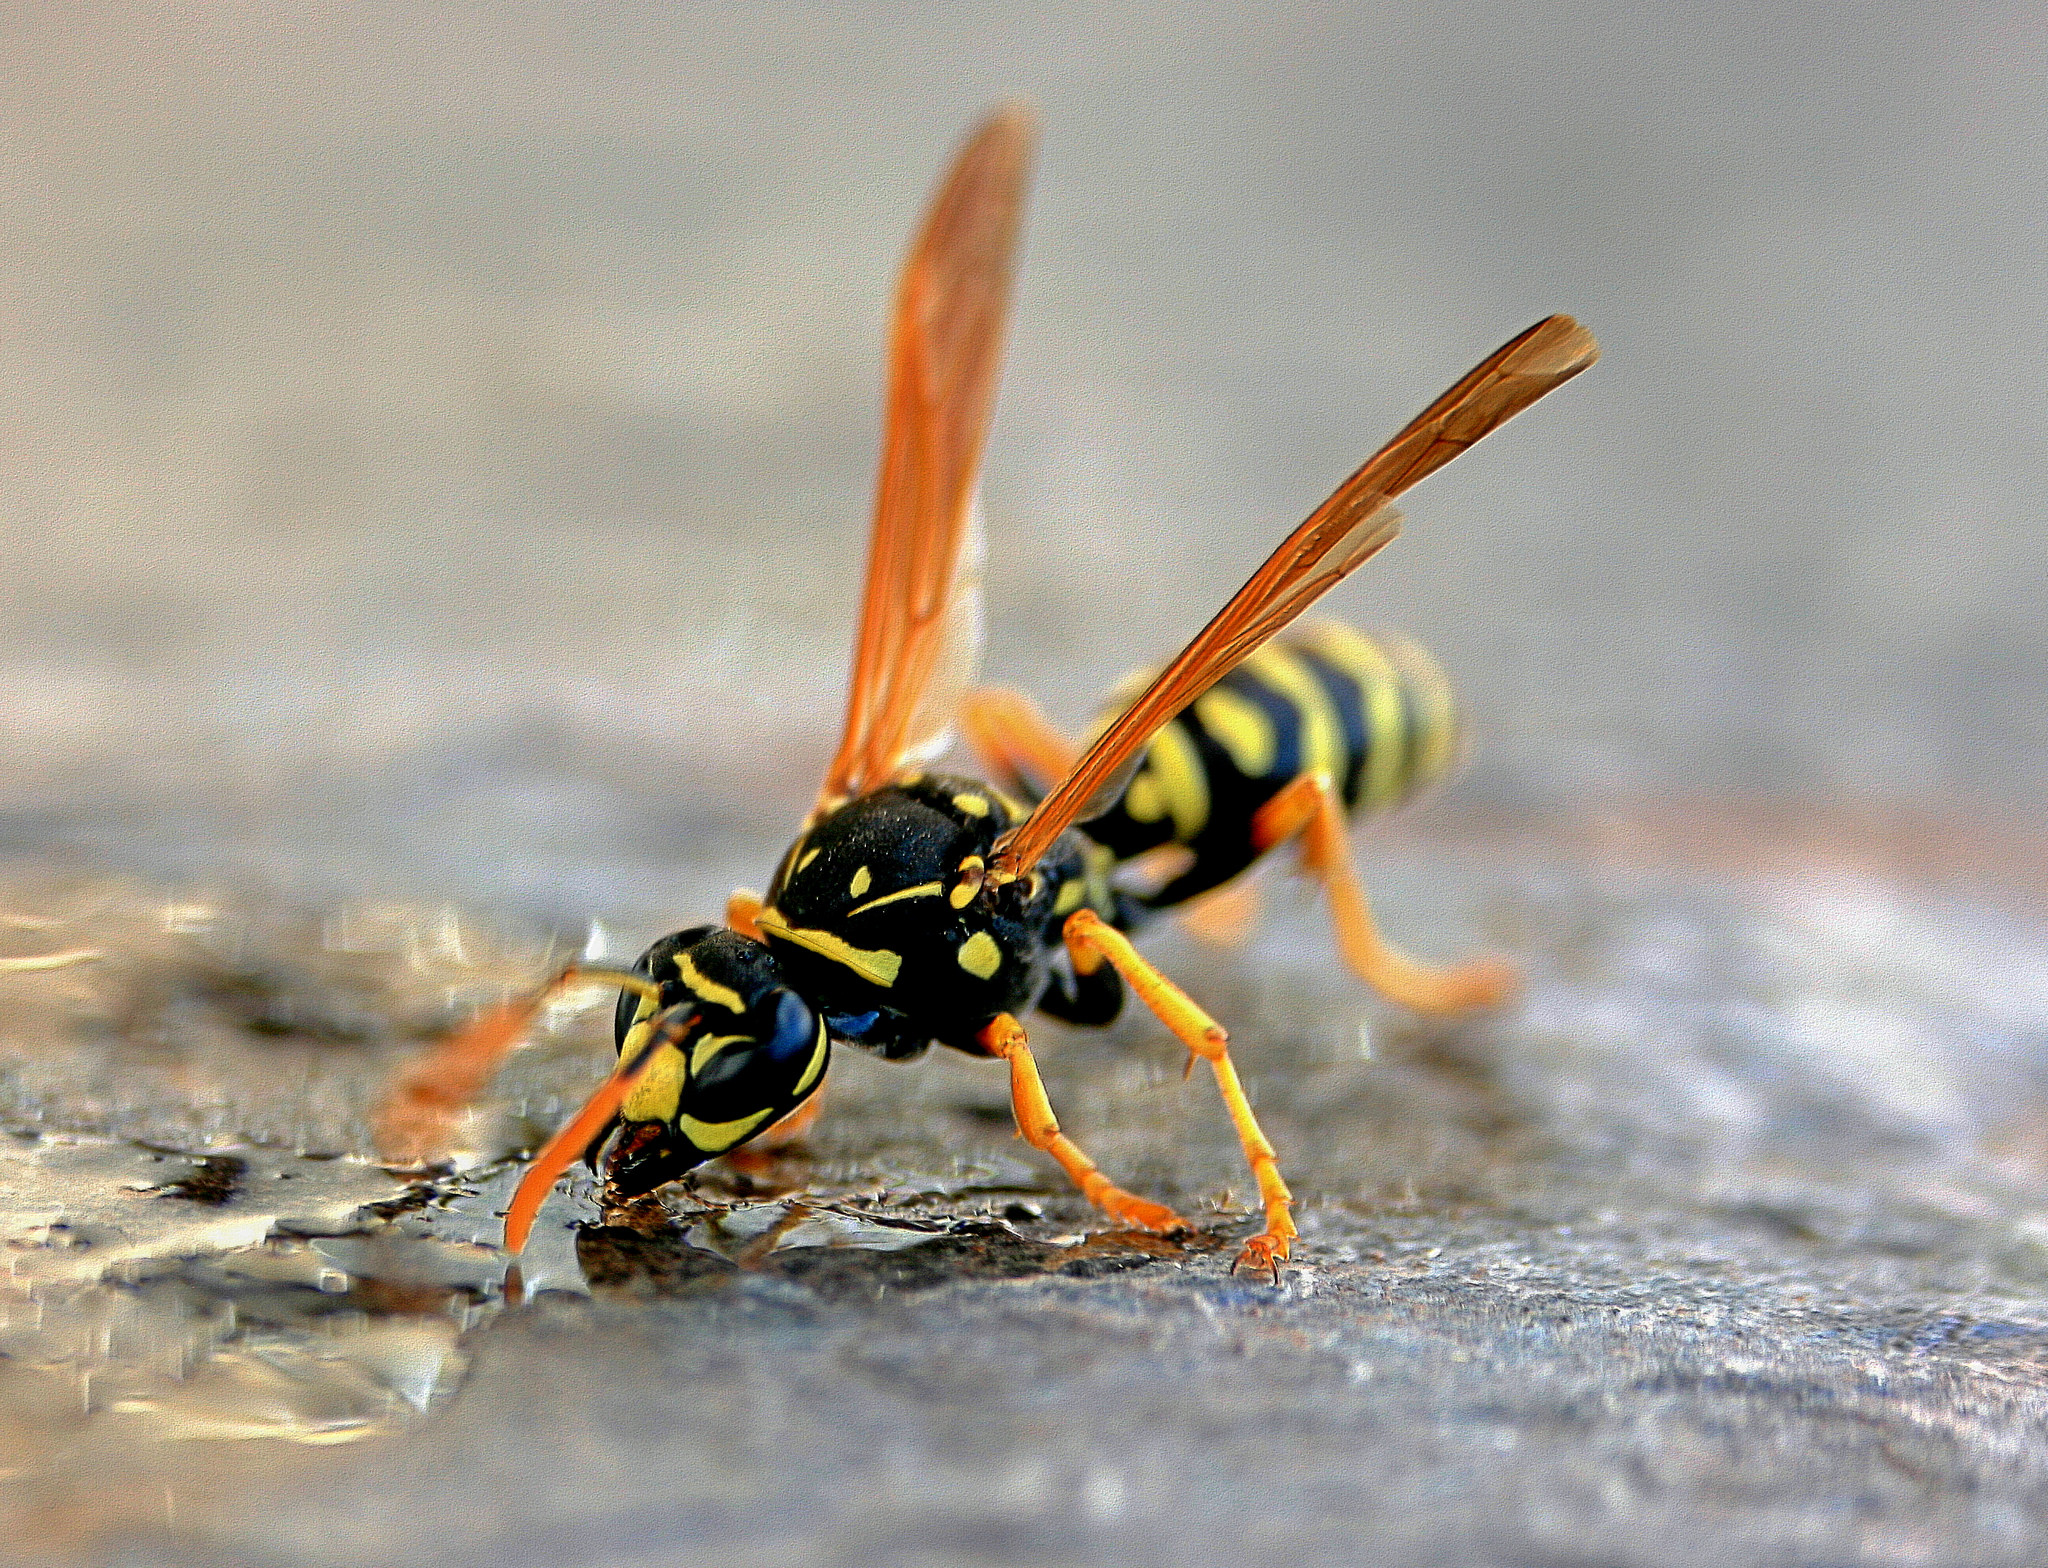 Drought driving more yellowjackets into backyards this year